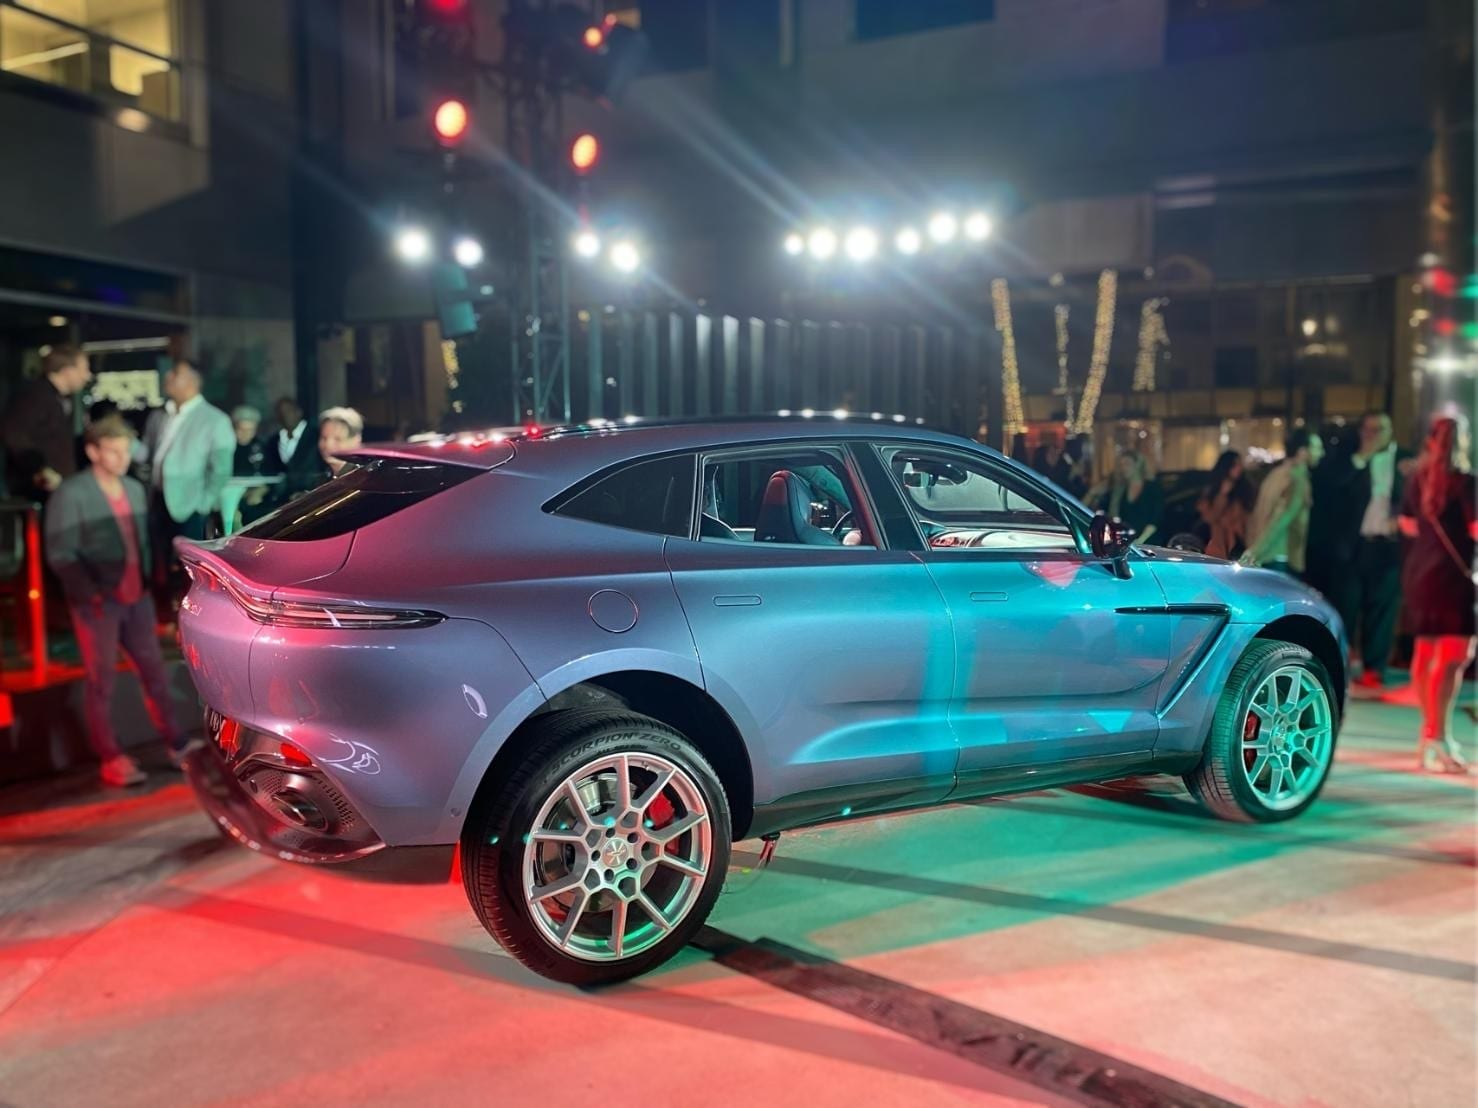 2020 Aston Martin Dbx Is A Home Run For Luxury Automaker